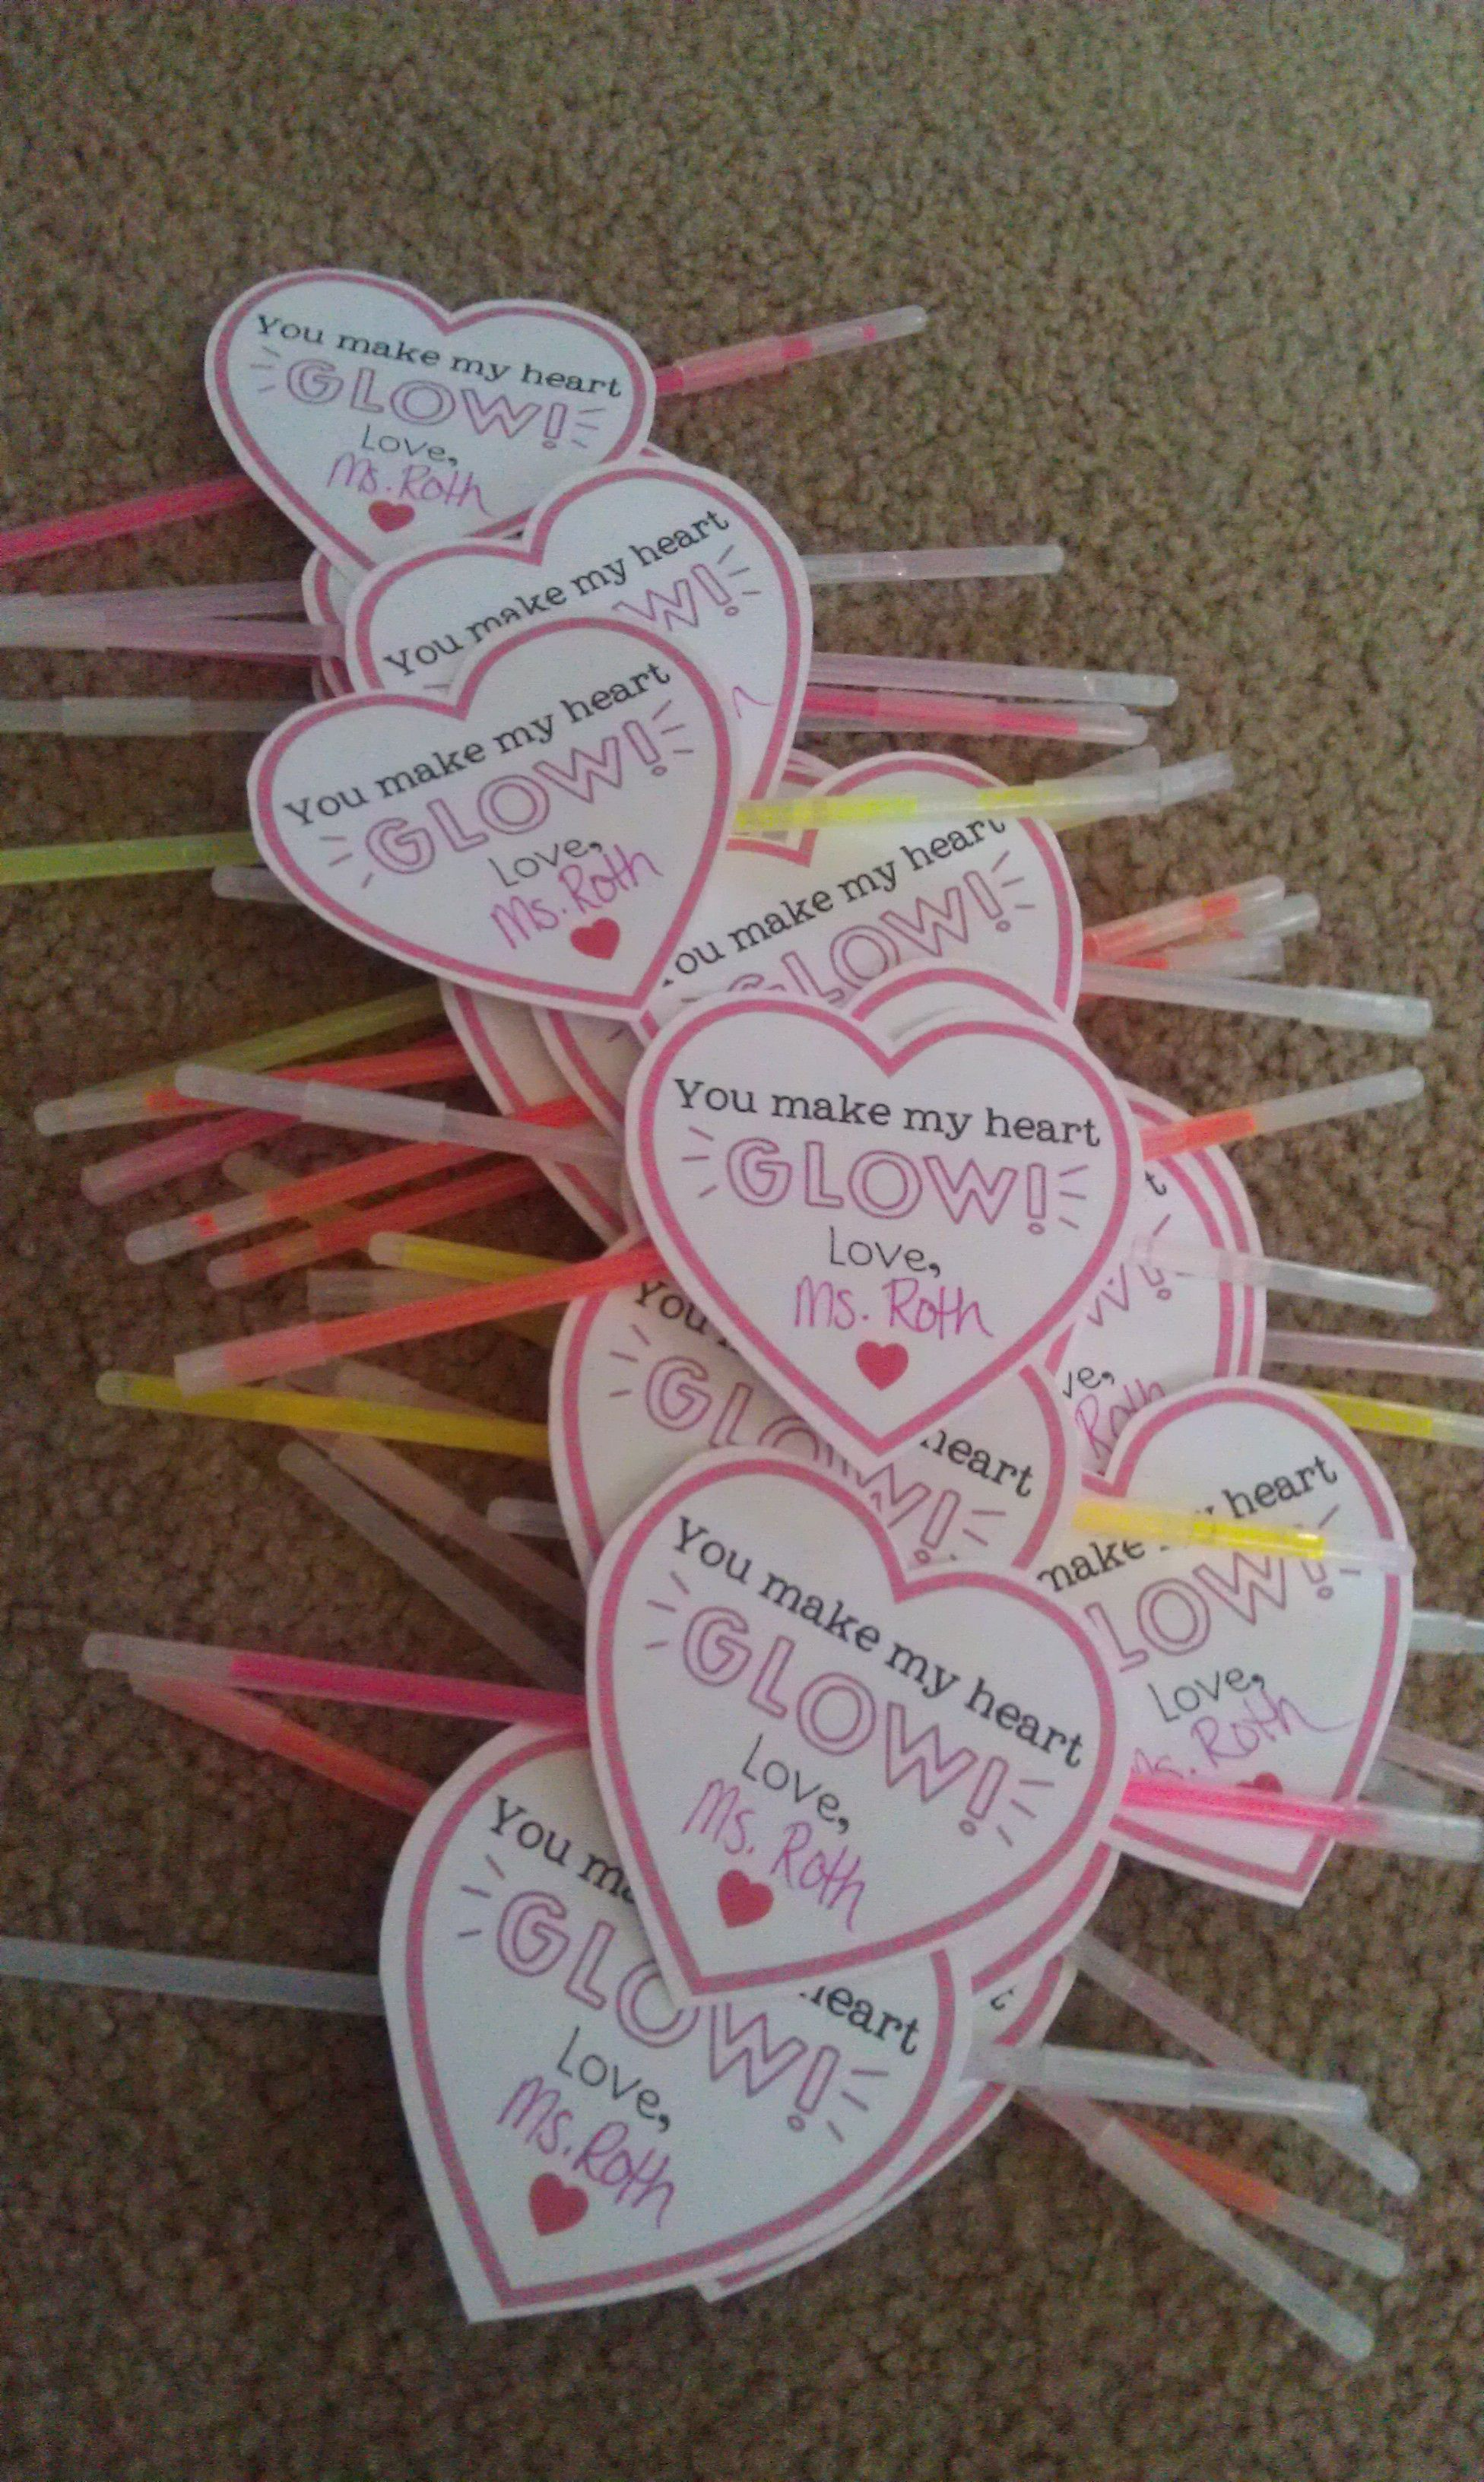 Glow stick Valentines-You make my heart glow! Great idea for ...